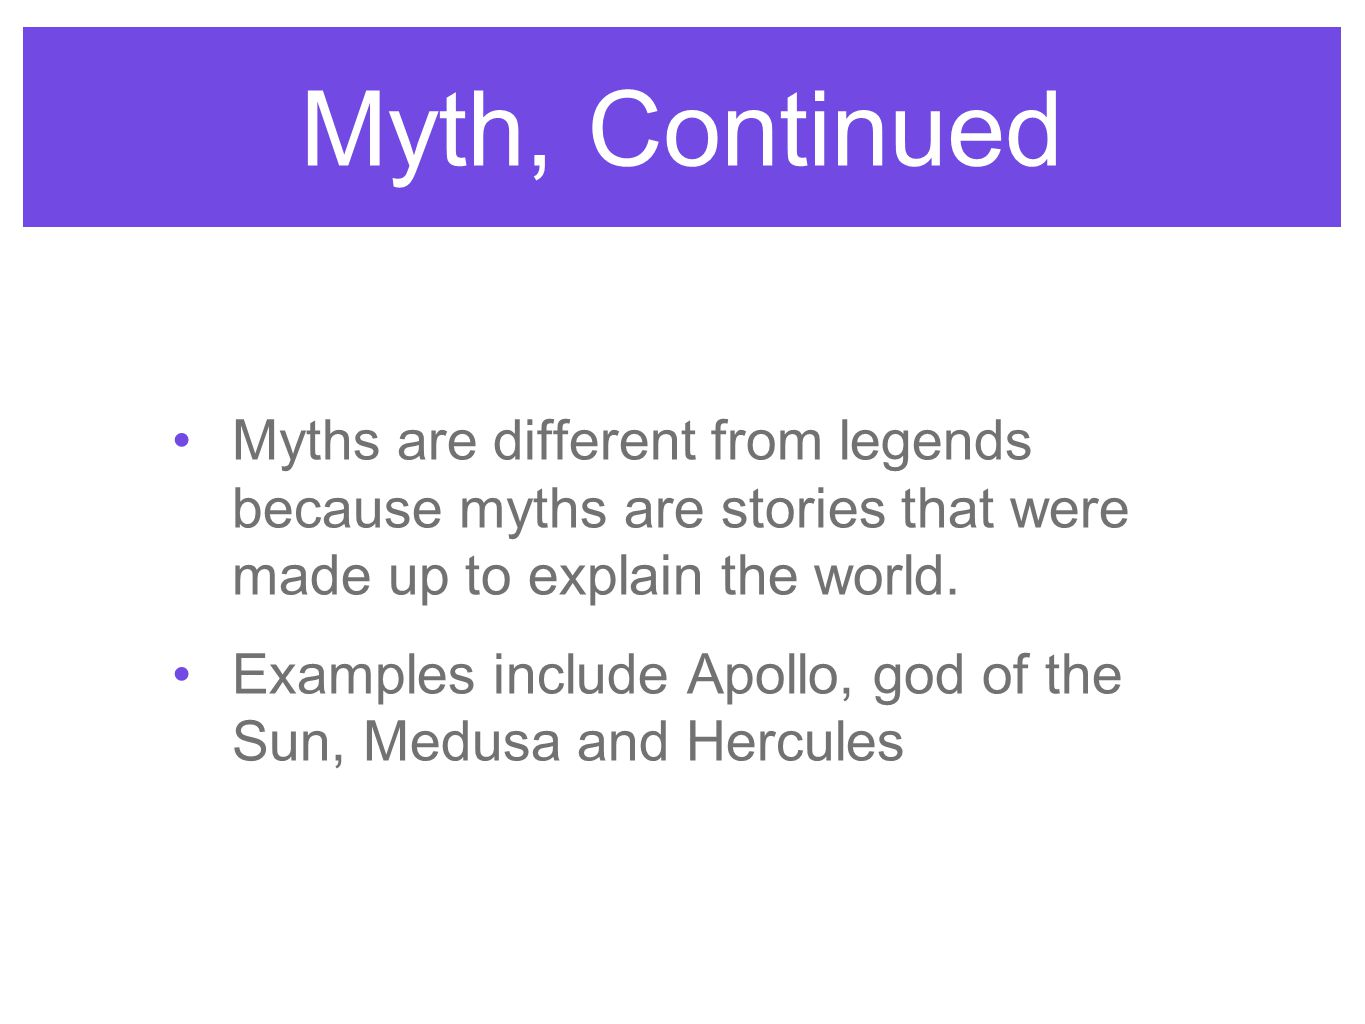 Myth, Continued Myths are different from legends because myths are stories that were made up to explain the world.